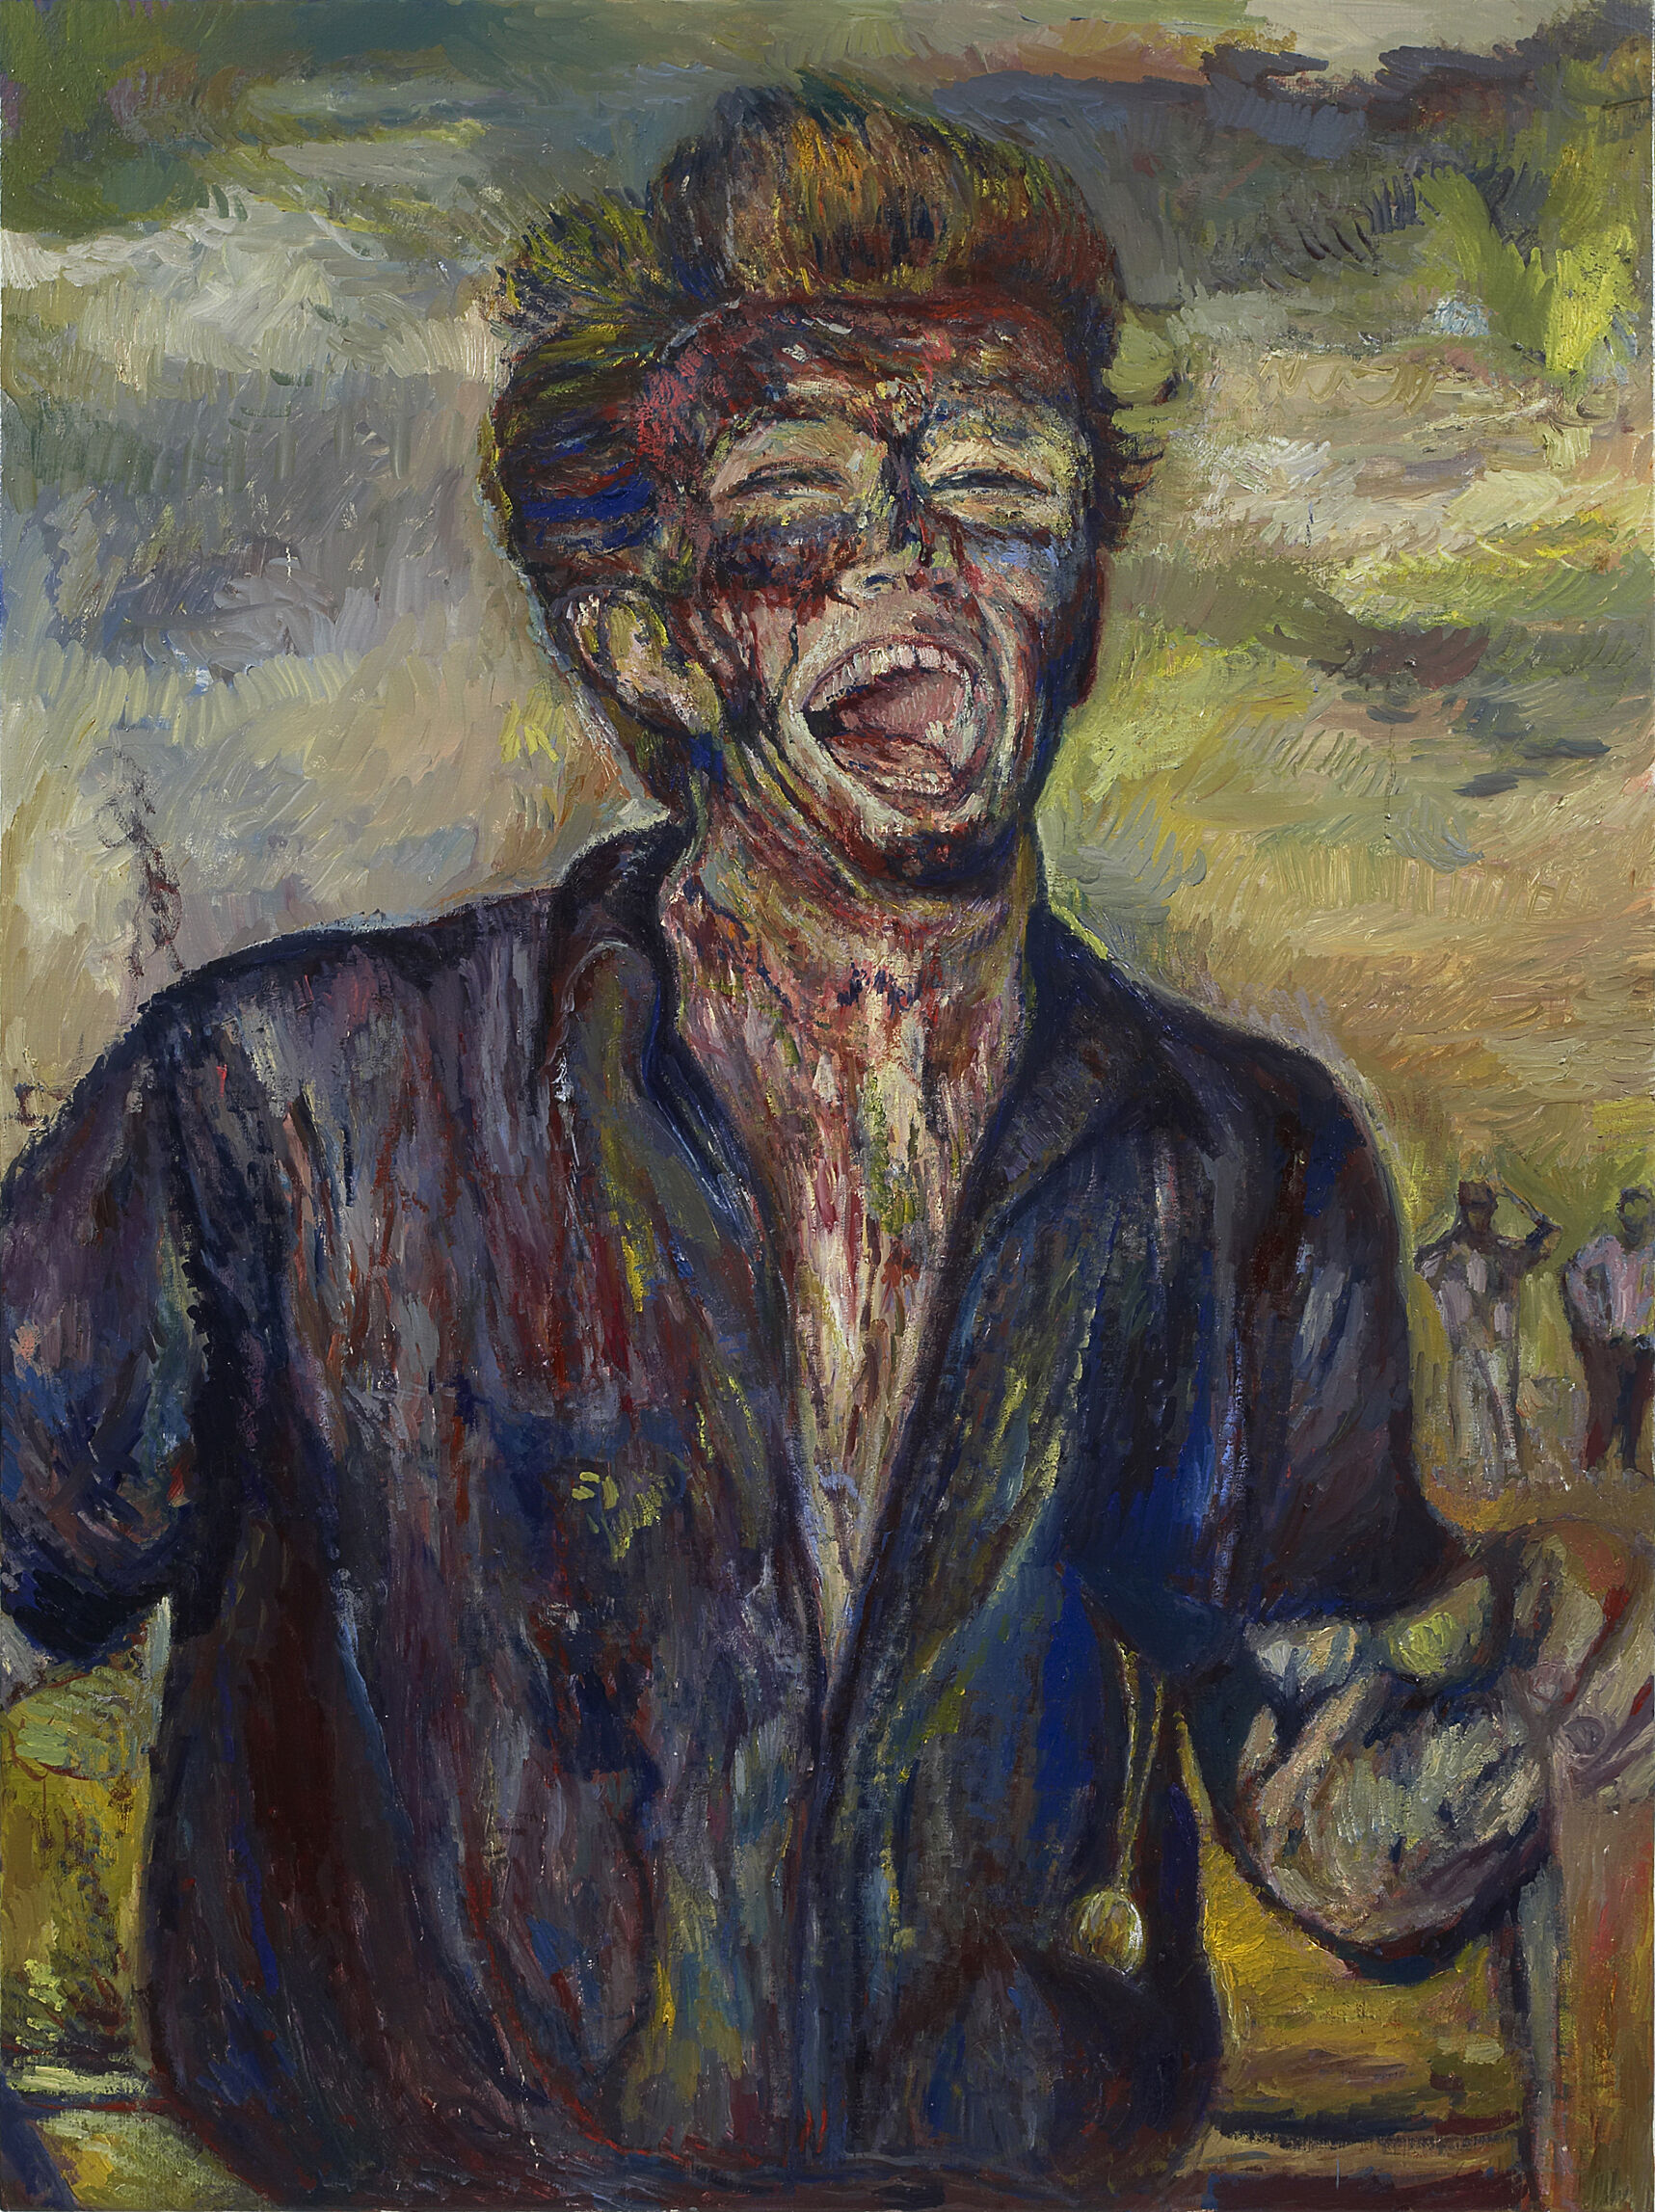 A painting of a man who works at a gusher.